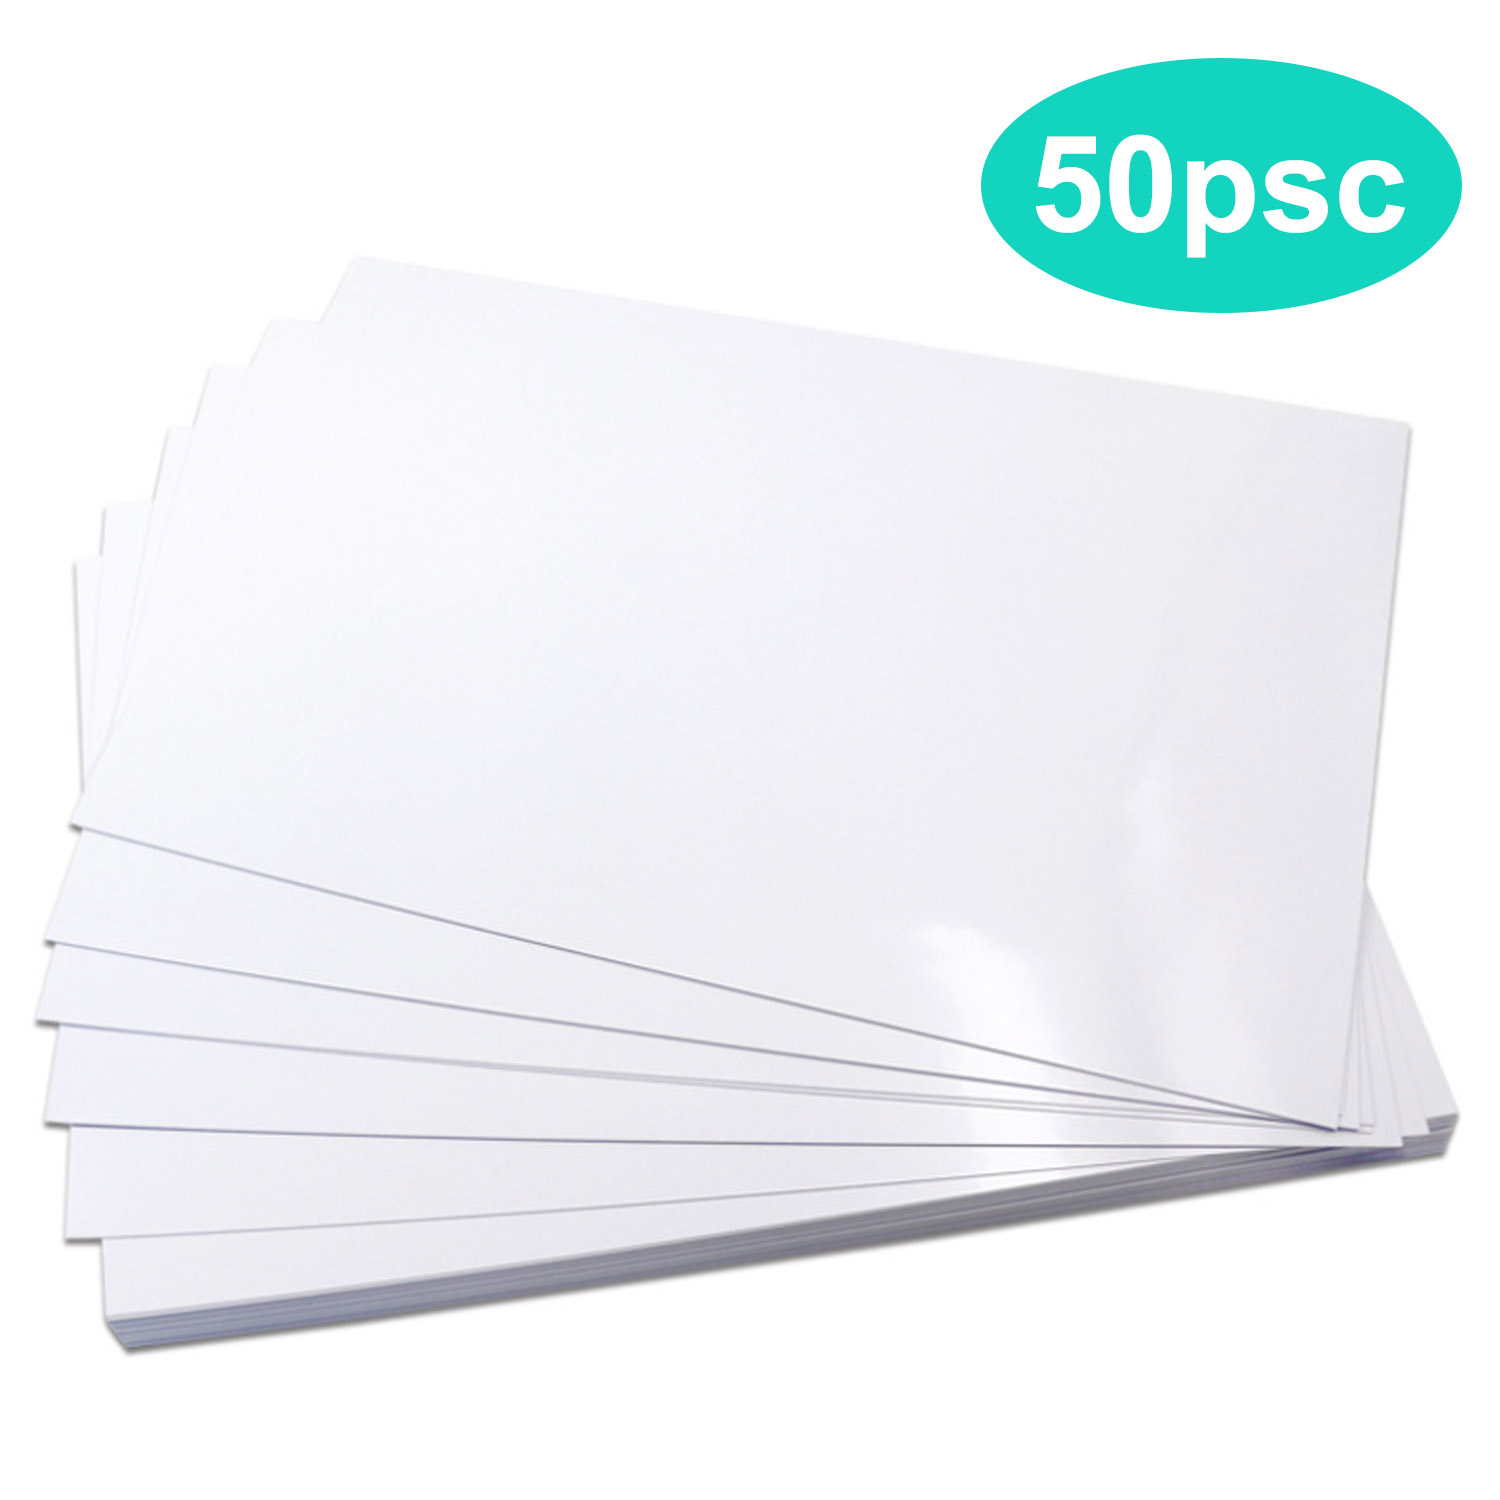 50 Sheets A4 Size 180g High Glossy Photo Papers For Menu Poster Photo Resume Magazine Cover Supporting Double-sided Printing